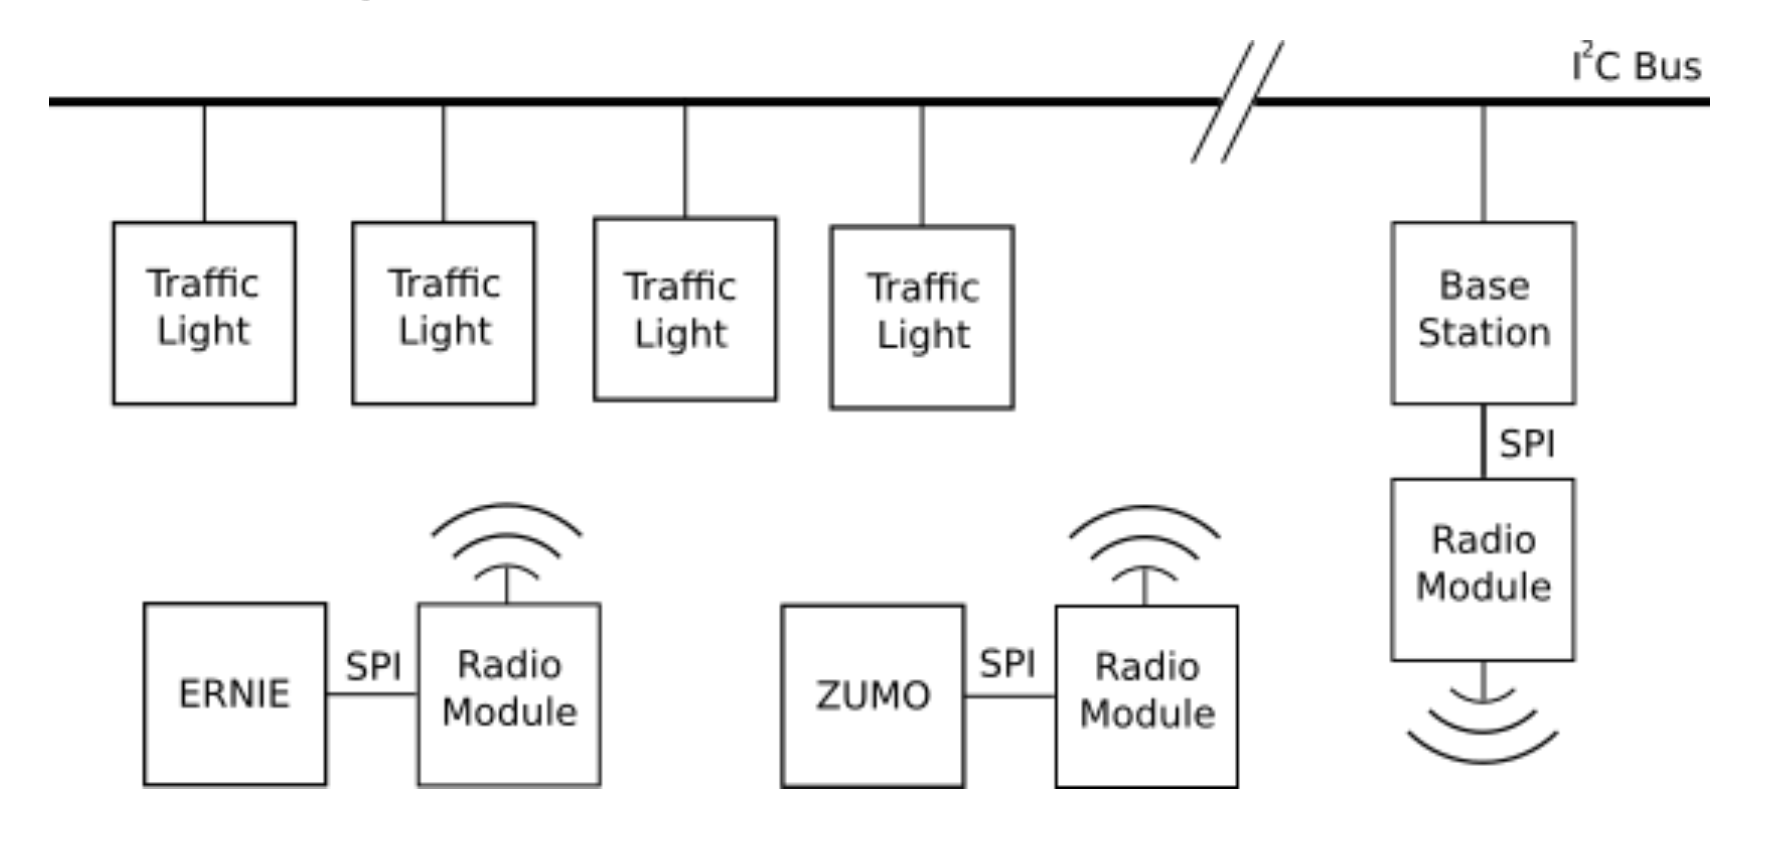 daisy chain wiring diagram traffic signals wiring library Daisy Chain Connection Diagrams each traffic light is a relatively simple circuit consisting of an arduino and 3 leds (